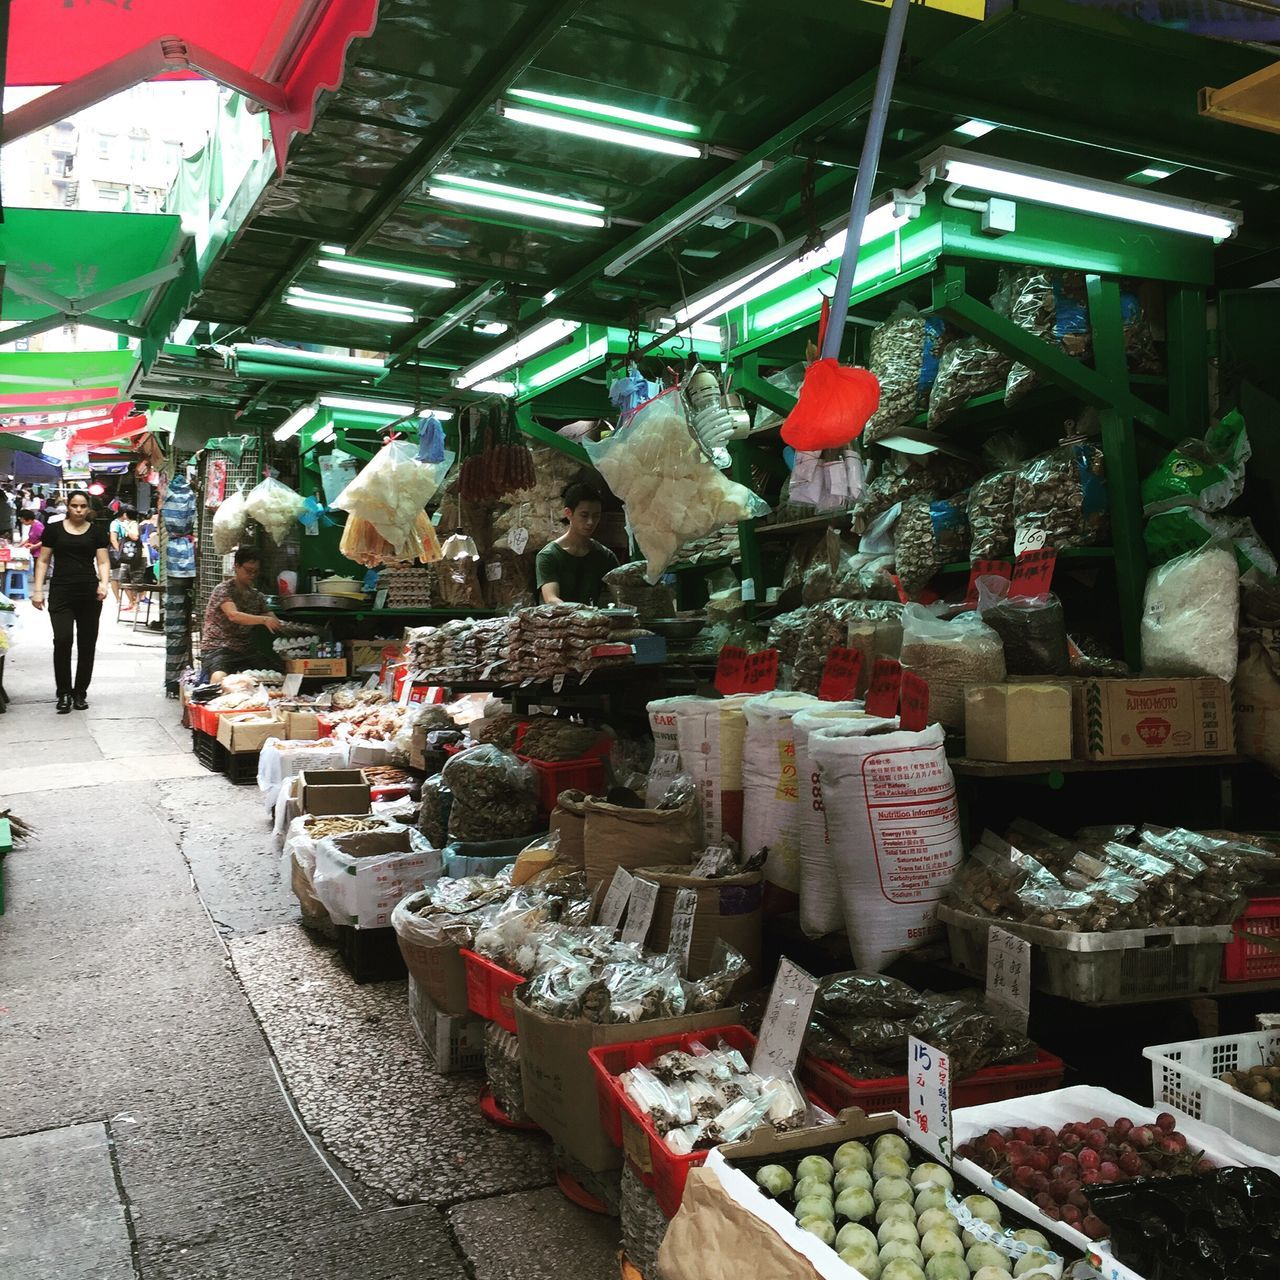 @izzymaxie Street market at HongKong Central, freshest produce everyday Streetmarket Streetphotography Street Life Street Food Worldwide Hongkong Photos Hongkongfood Hongkong Central Streetstyle Street Style From Around The World